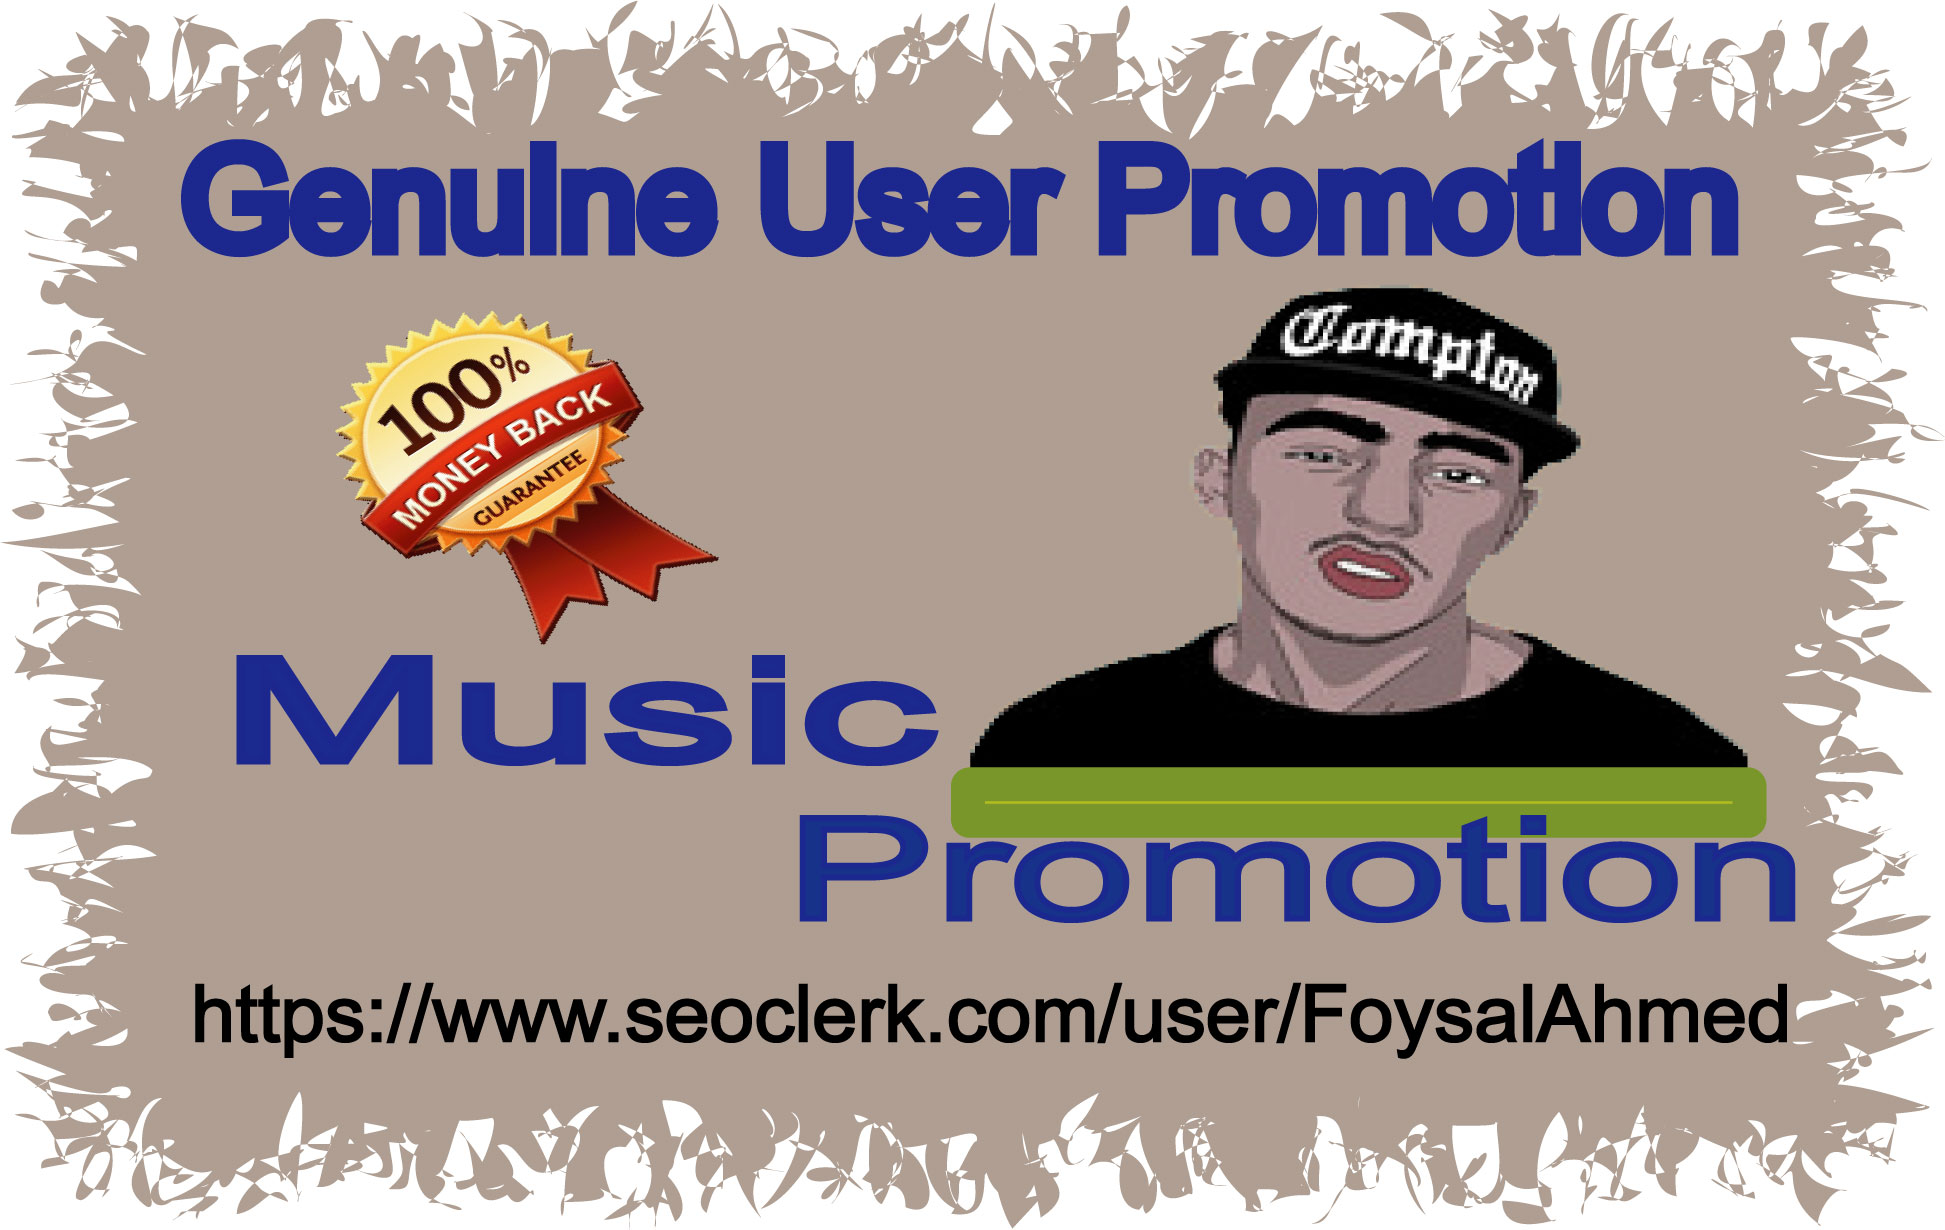 Music Promotion 150K USA Music Play With 1000 Llke & 500 Re-post & 100 Manual C0mments